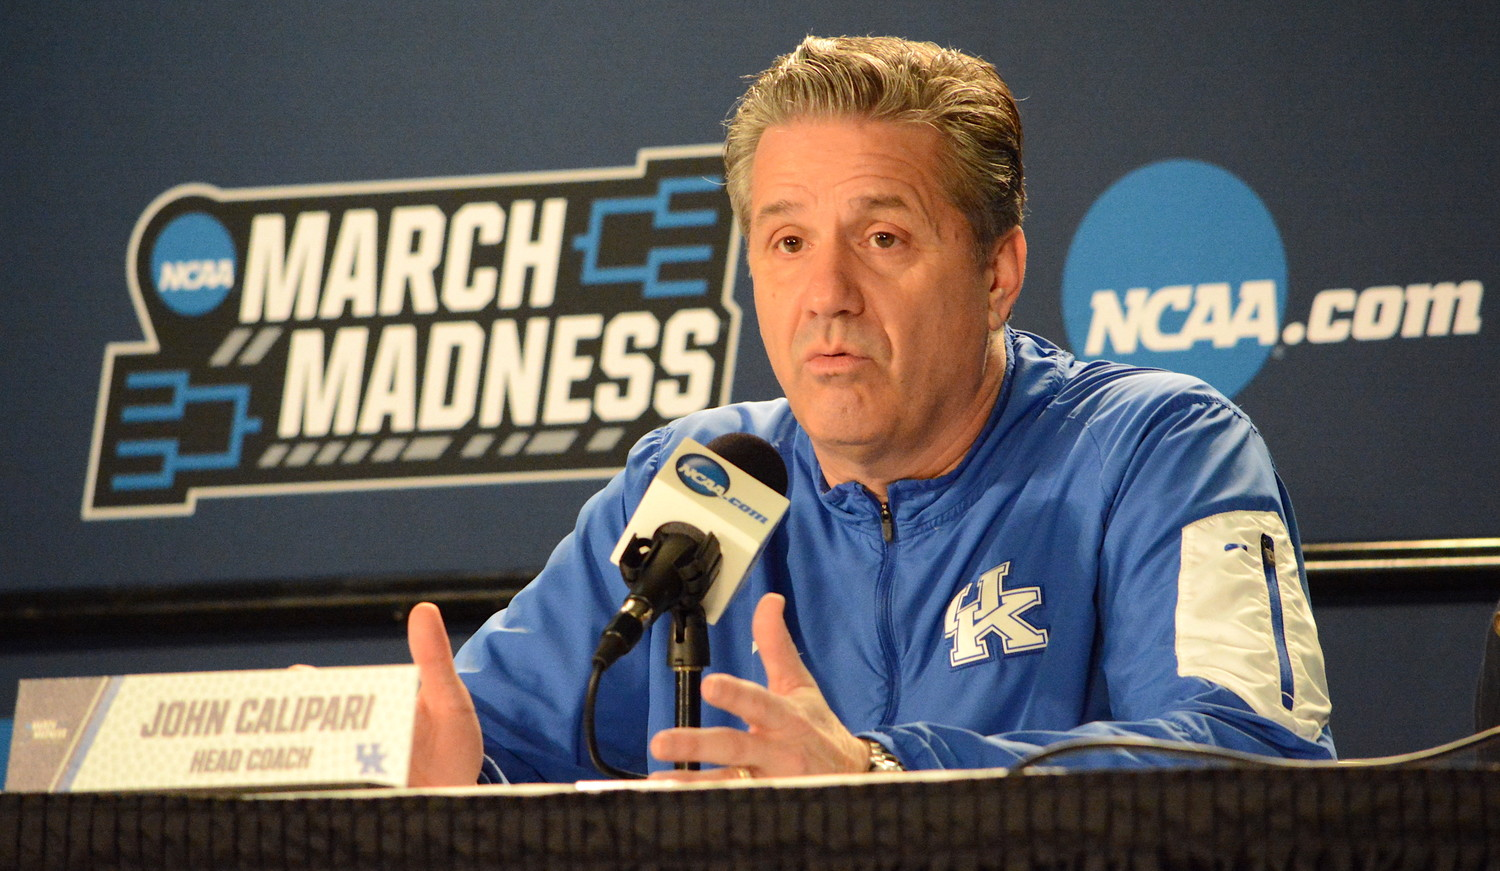 Kentucky coach John Calipari answers a question during a press conference Friday at Taco Bell Arena. The Wildcats take on Buffalo in the second round of the NCAA Tournament Saturday in Boise. (Kentucky Today/Keith Taylor)